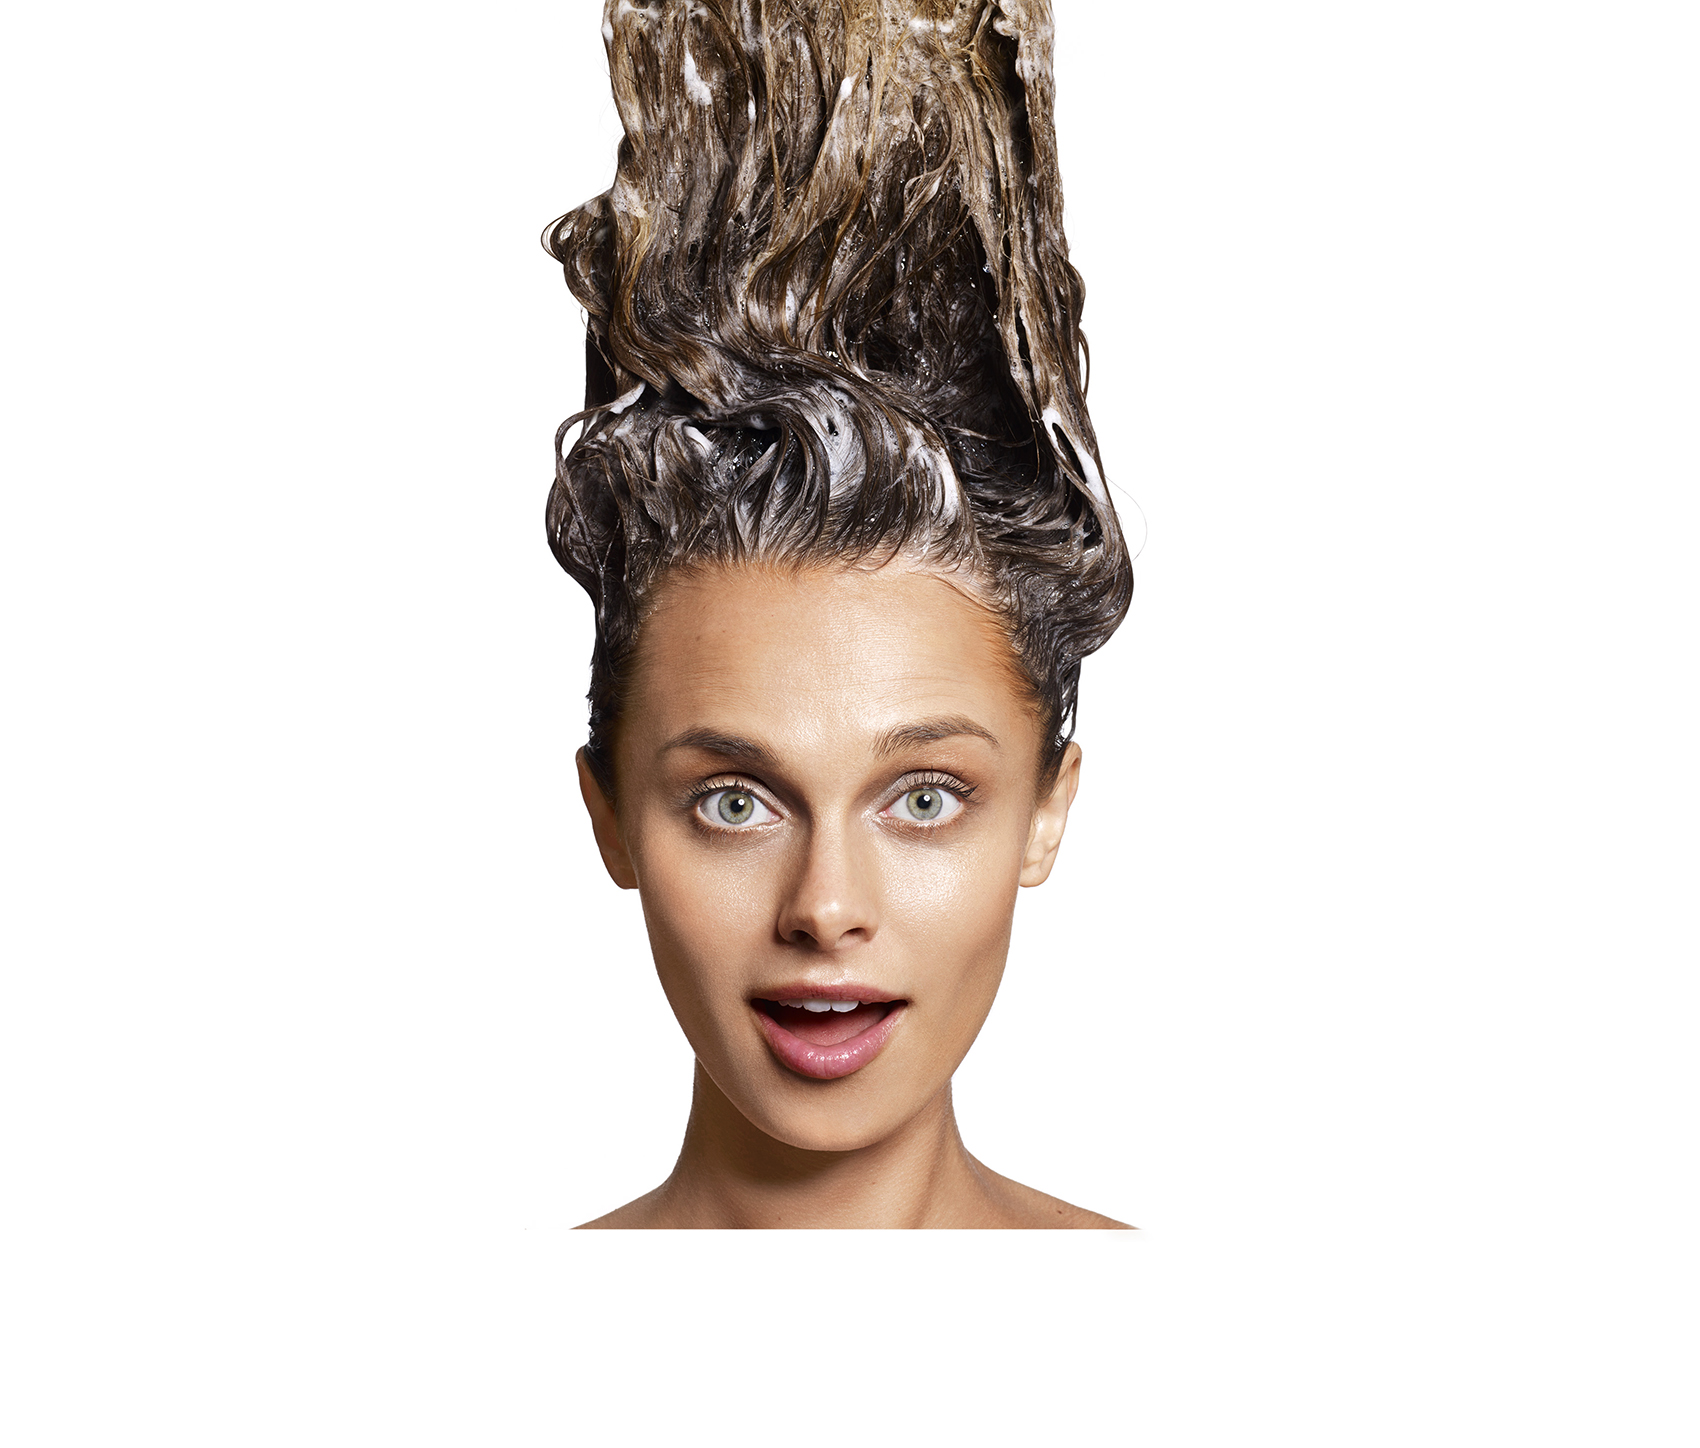 Woman with shampoo in hair